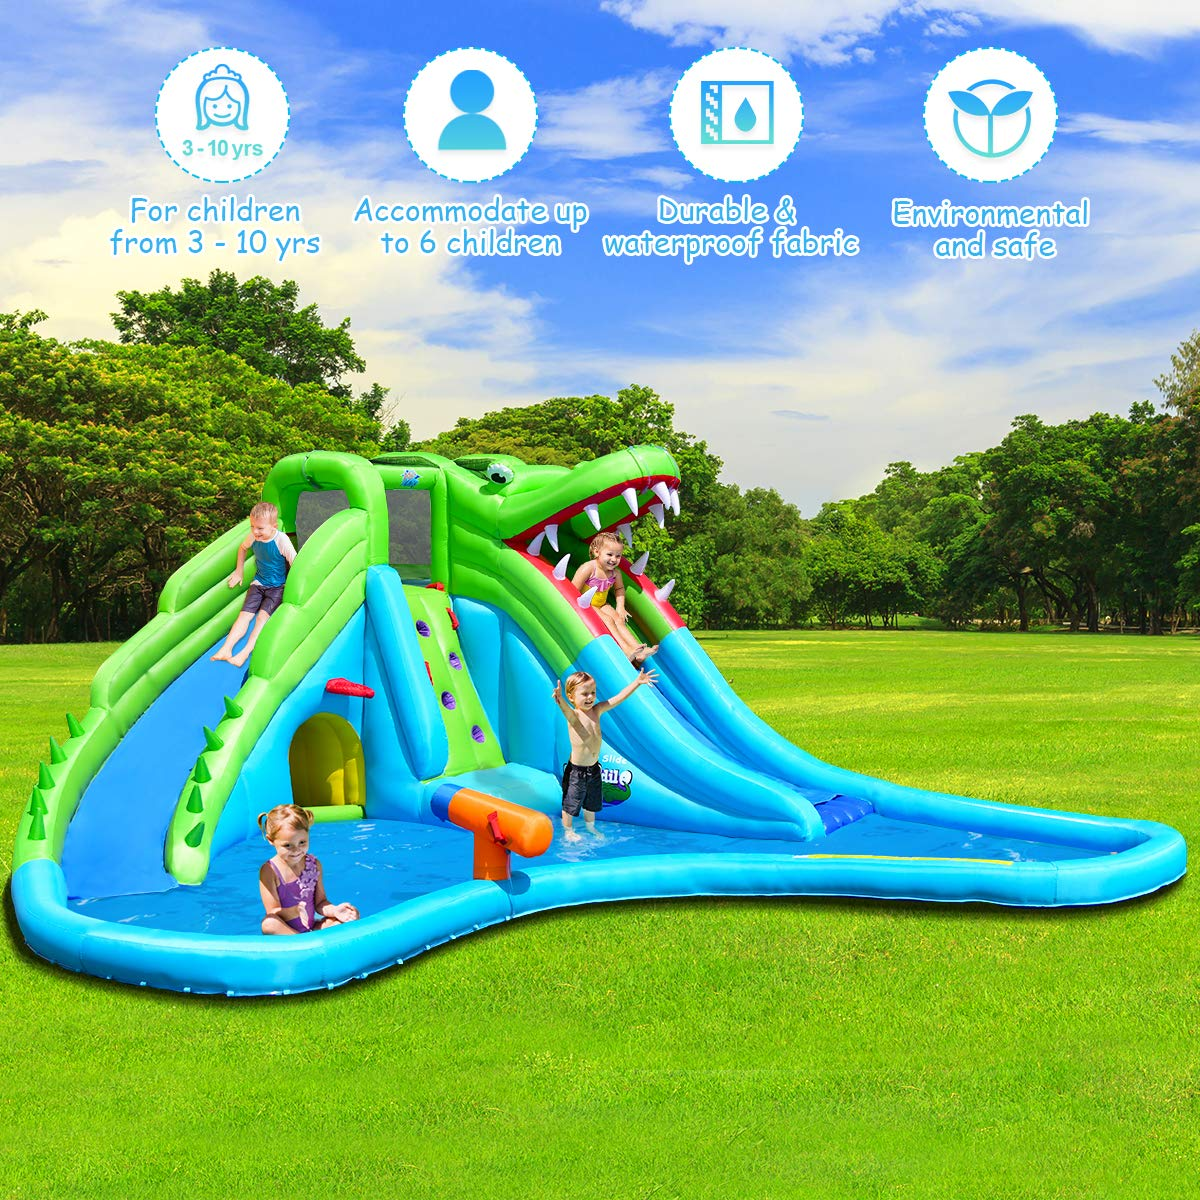 Costzon Inflatable Pool Bouncer, Crocodile Themed Bounce House w/Two Water Slides, Climbing Wall, Basketball Rim, Tunnel, Kids Water Park, Including Carry Bag, Hose, Repair Kit, 780W Air Blower by Costzon (Image #2)